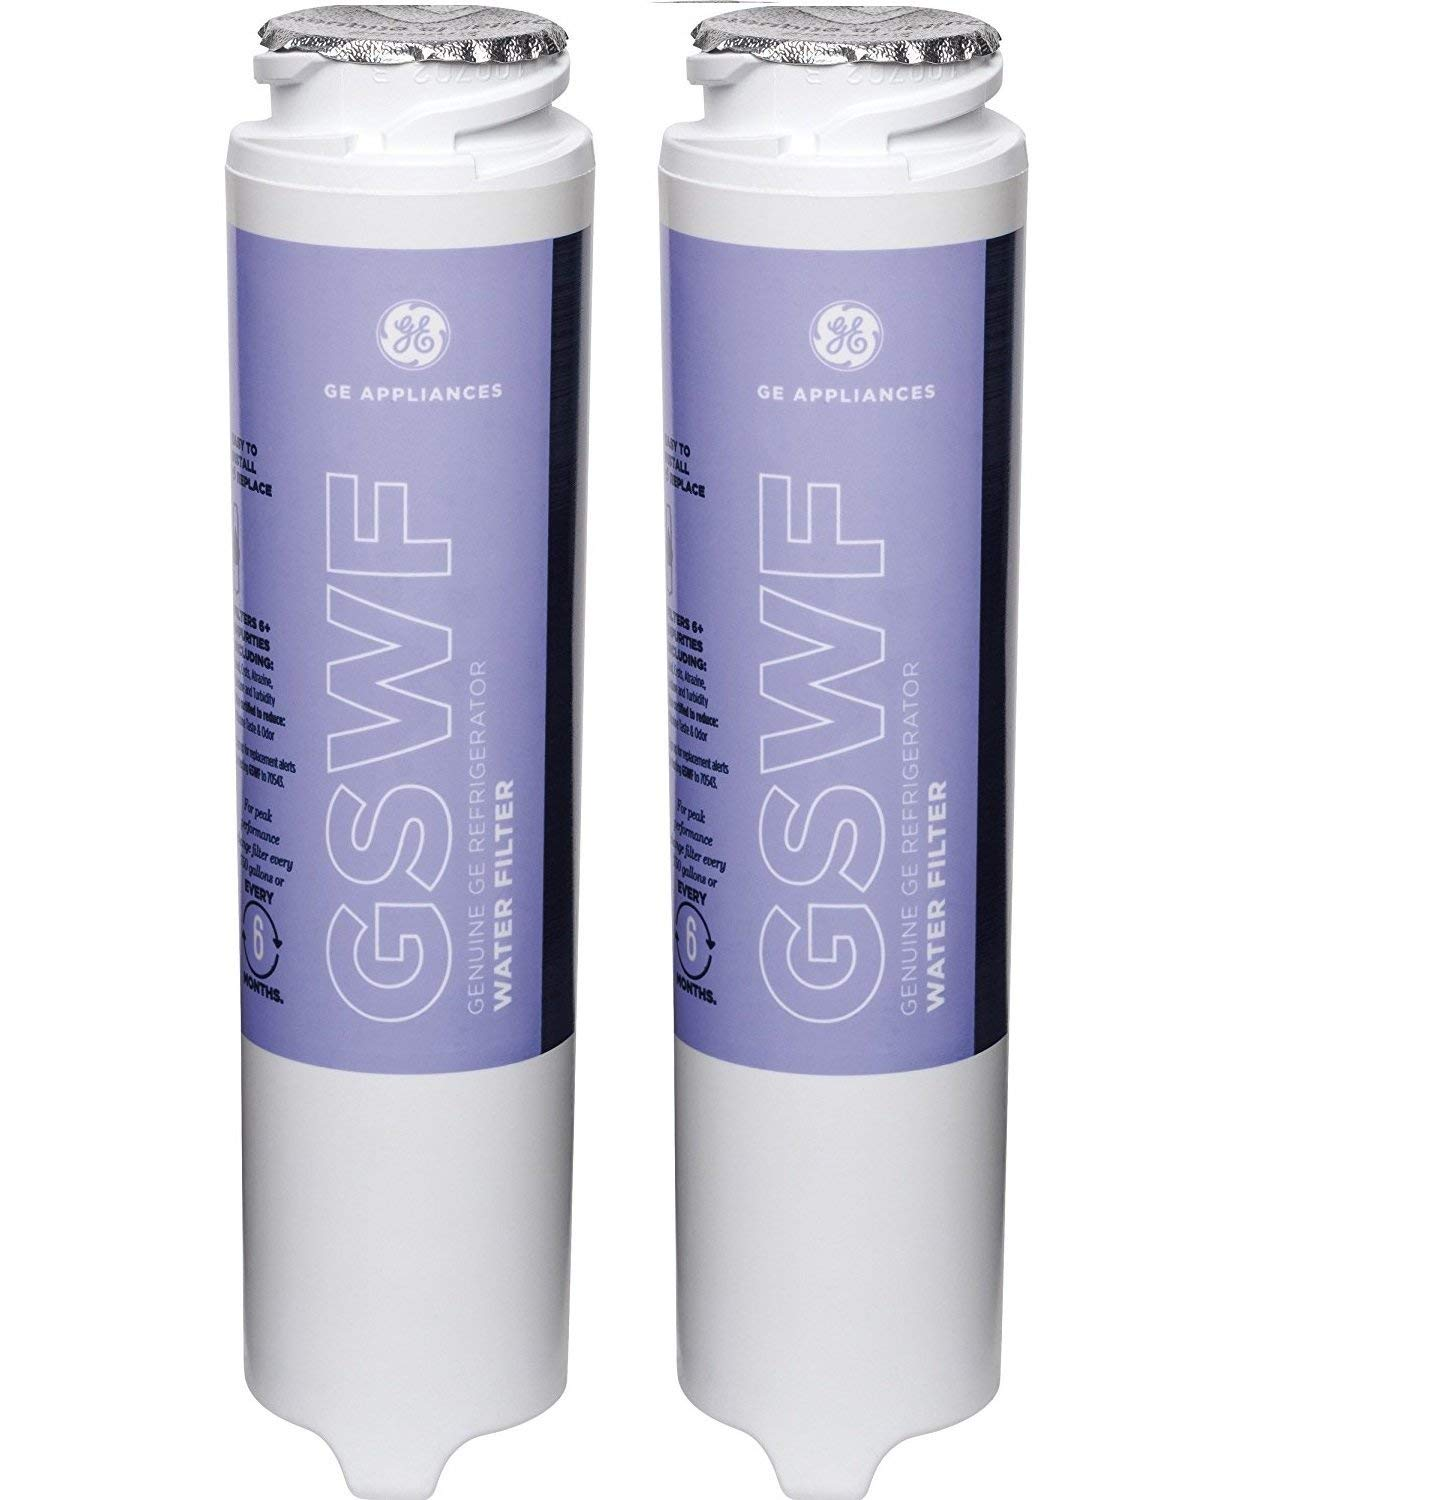 GE GSWF Refrigerator Water Filter (2 pack) by GE